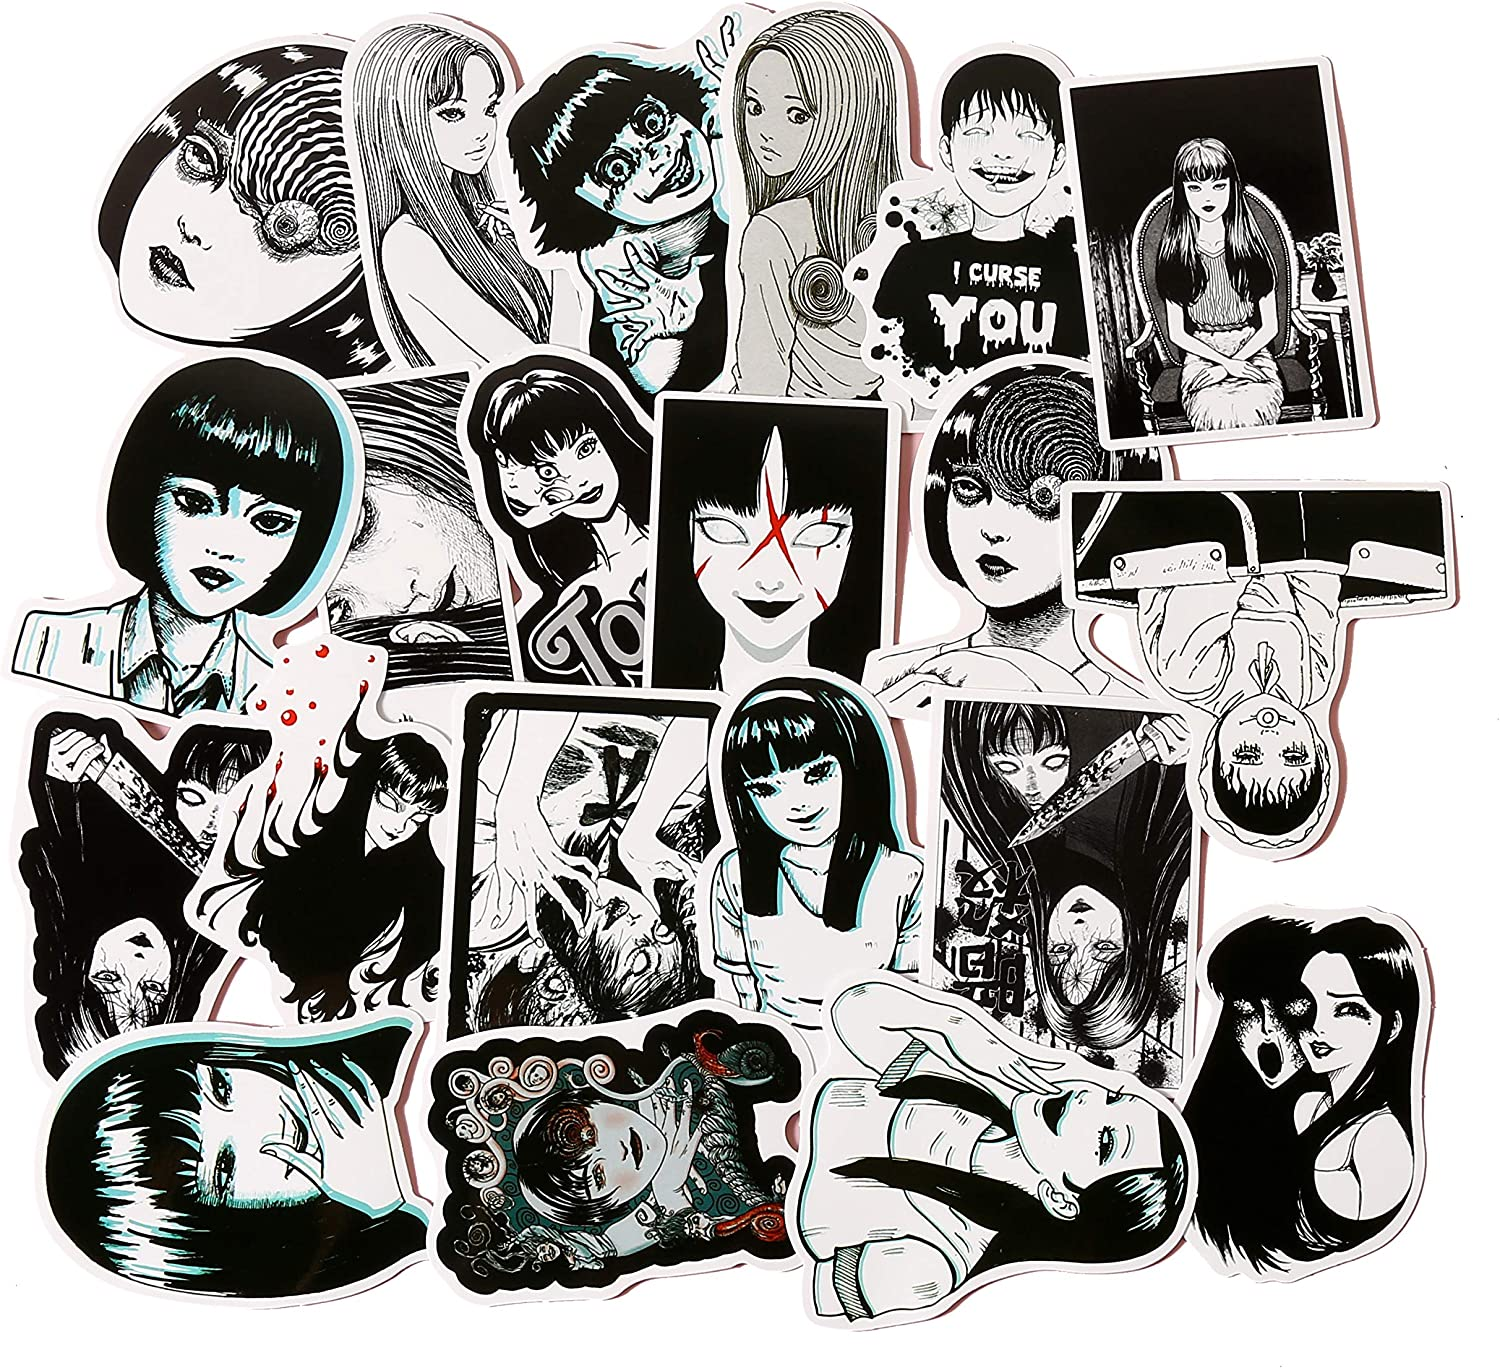 21 Pcs/Pack Japanese Comic Black and White Thriller Horror Movie Style Tomie Stickers Pack for Laptop Luggage Water Bottle Skateboard